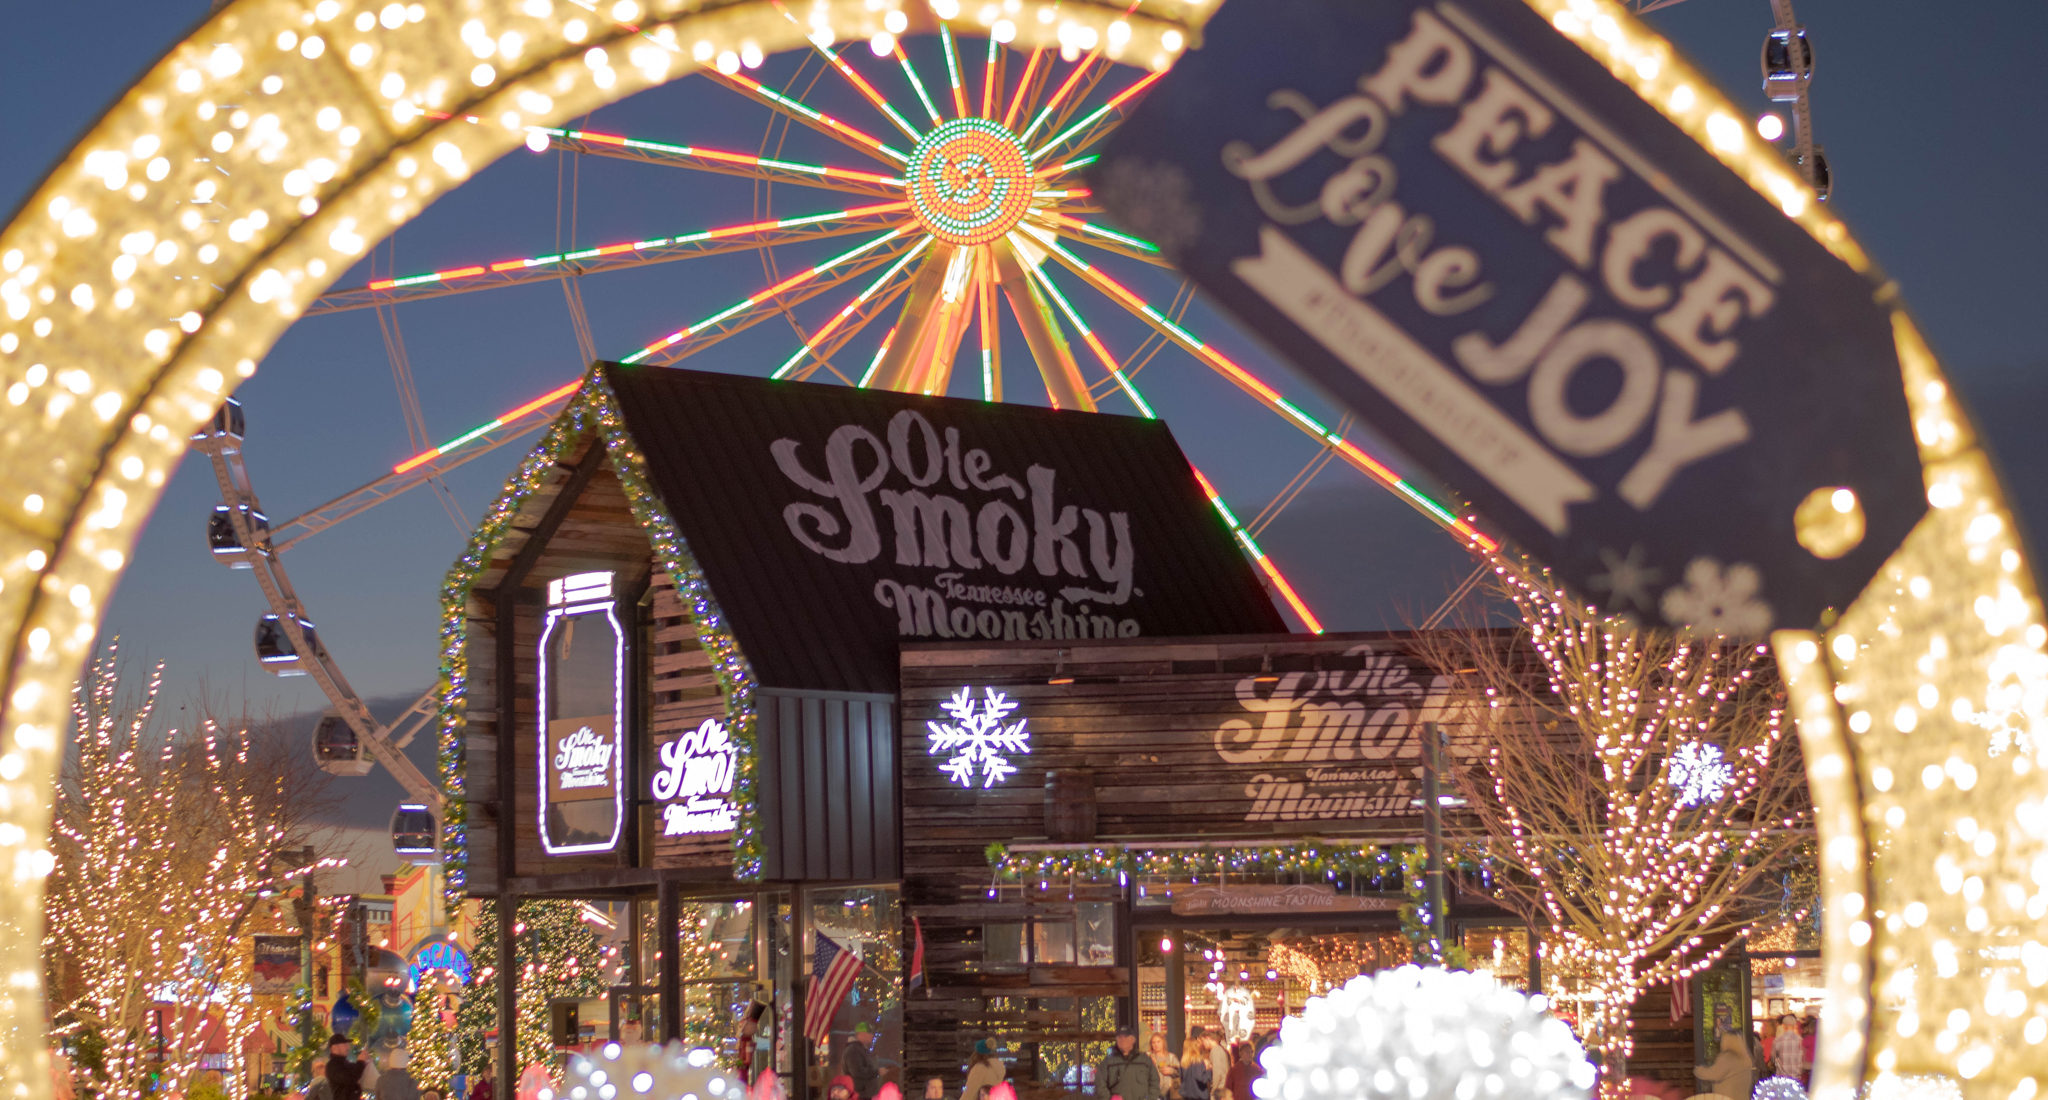 Dollywood Christmas Lights 2021 Dollywood S Smoky Mountain Christmas Is Ready For The Holidays Travelawaits